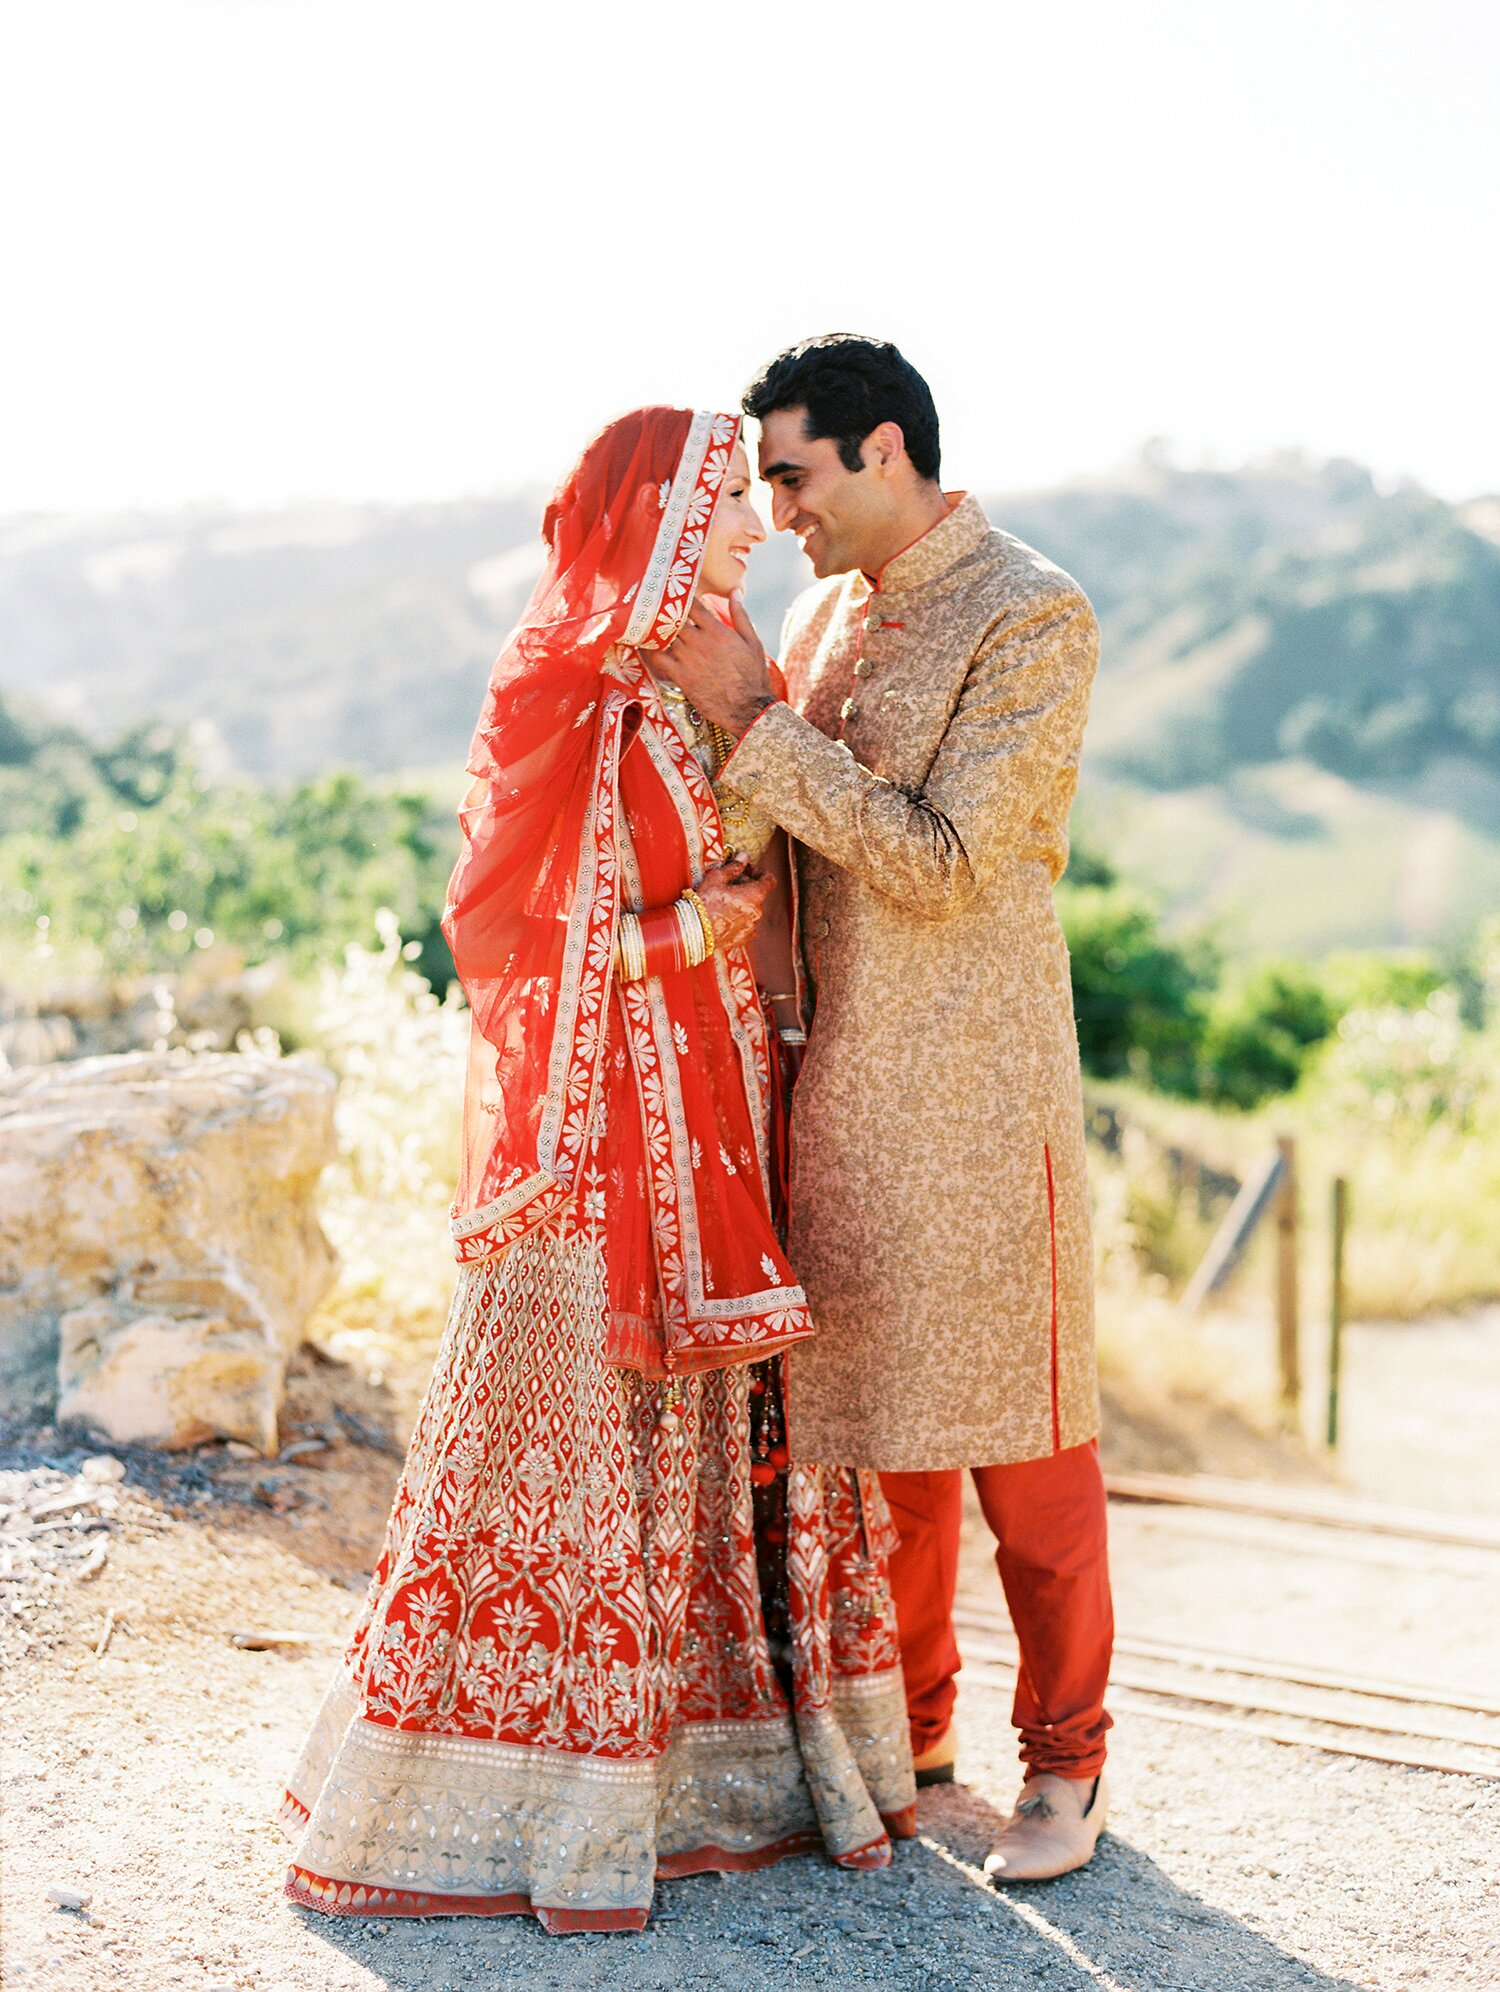 An Elegant Two Day Wedding In California With Both An Indian